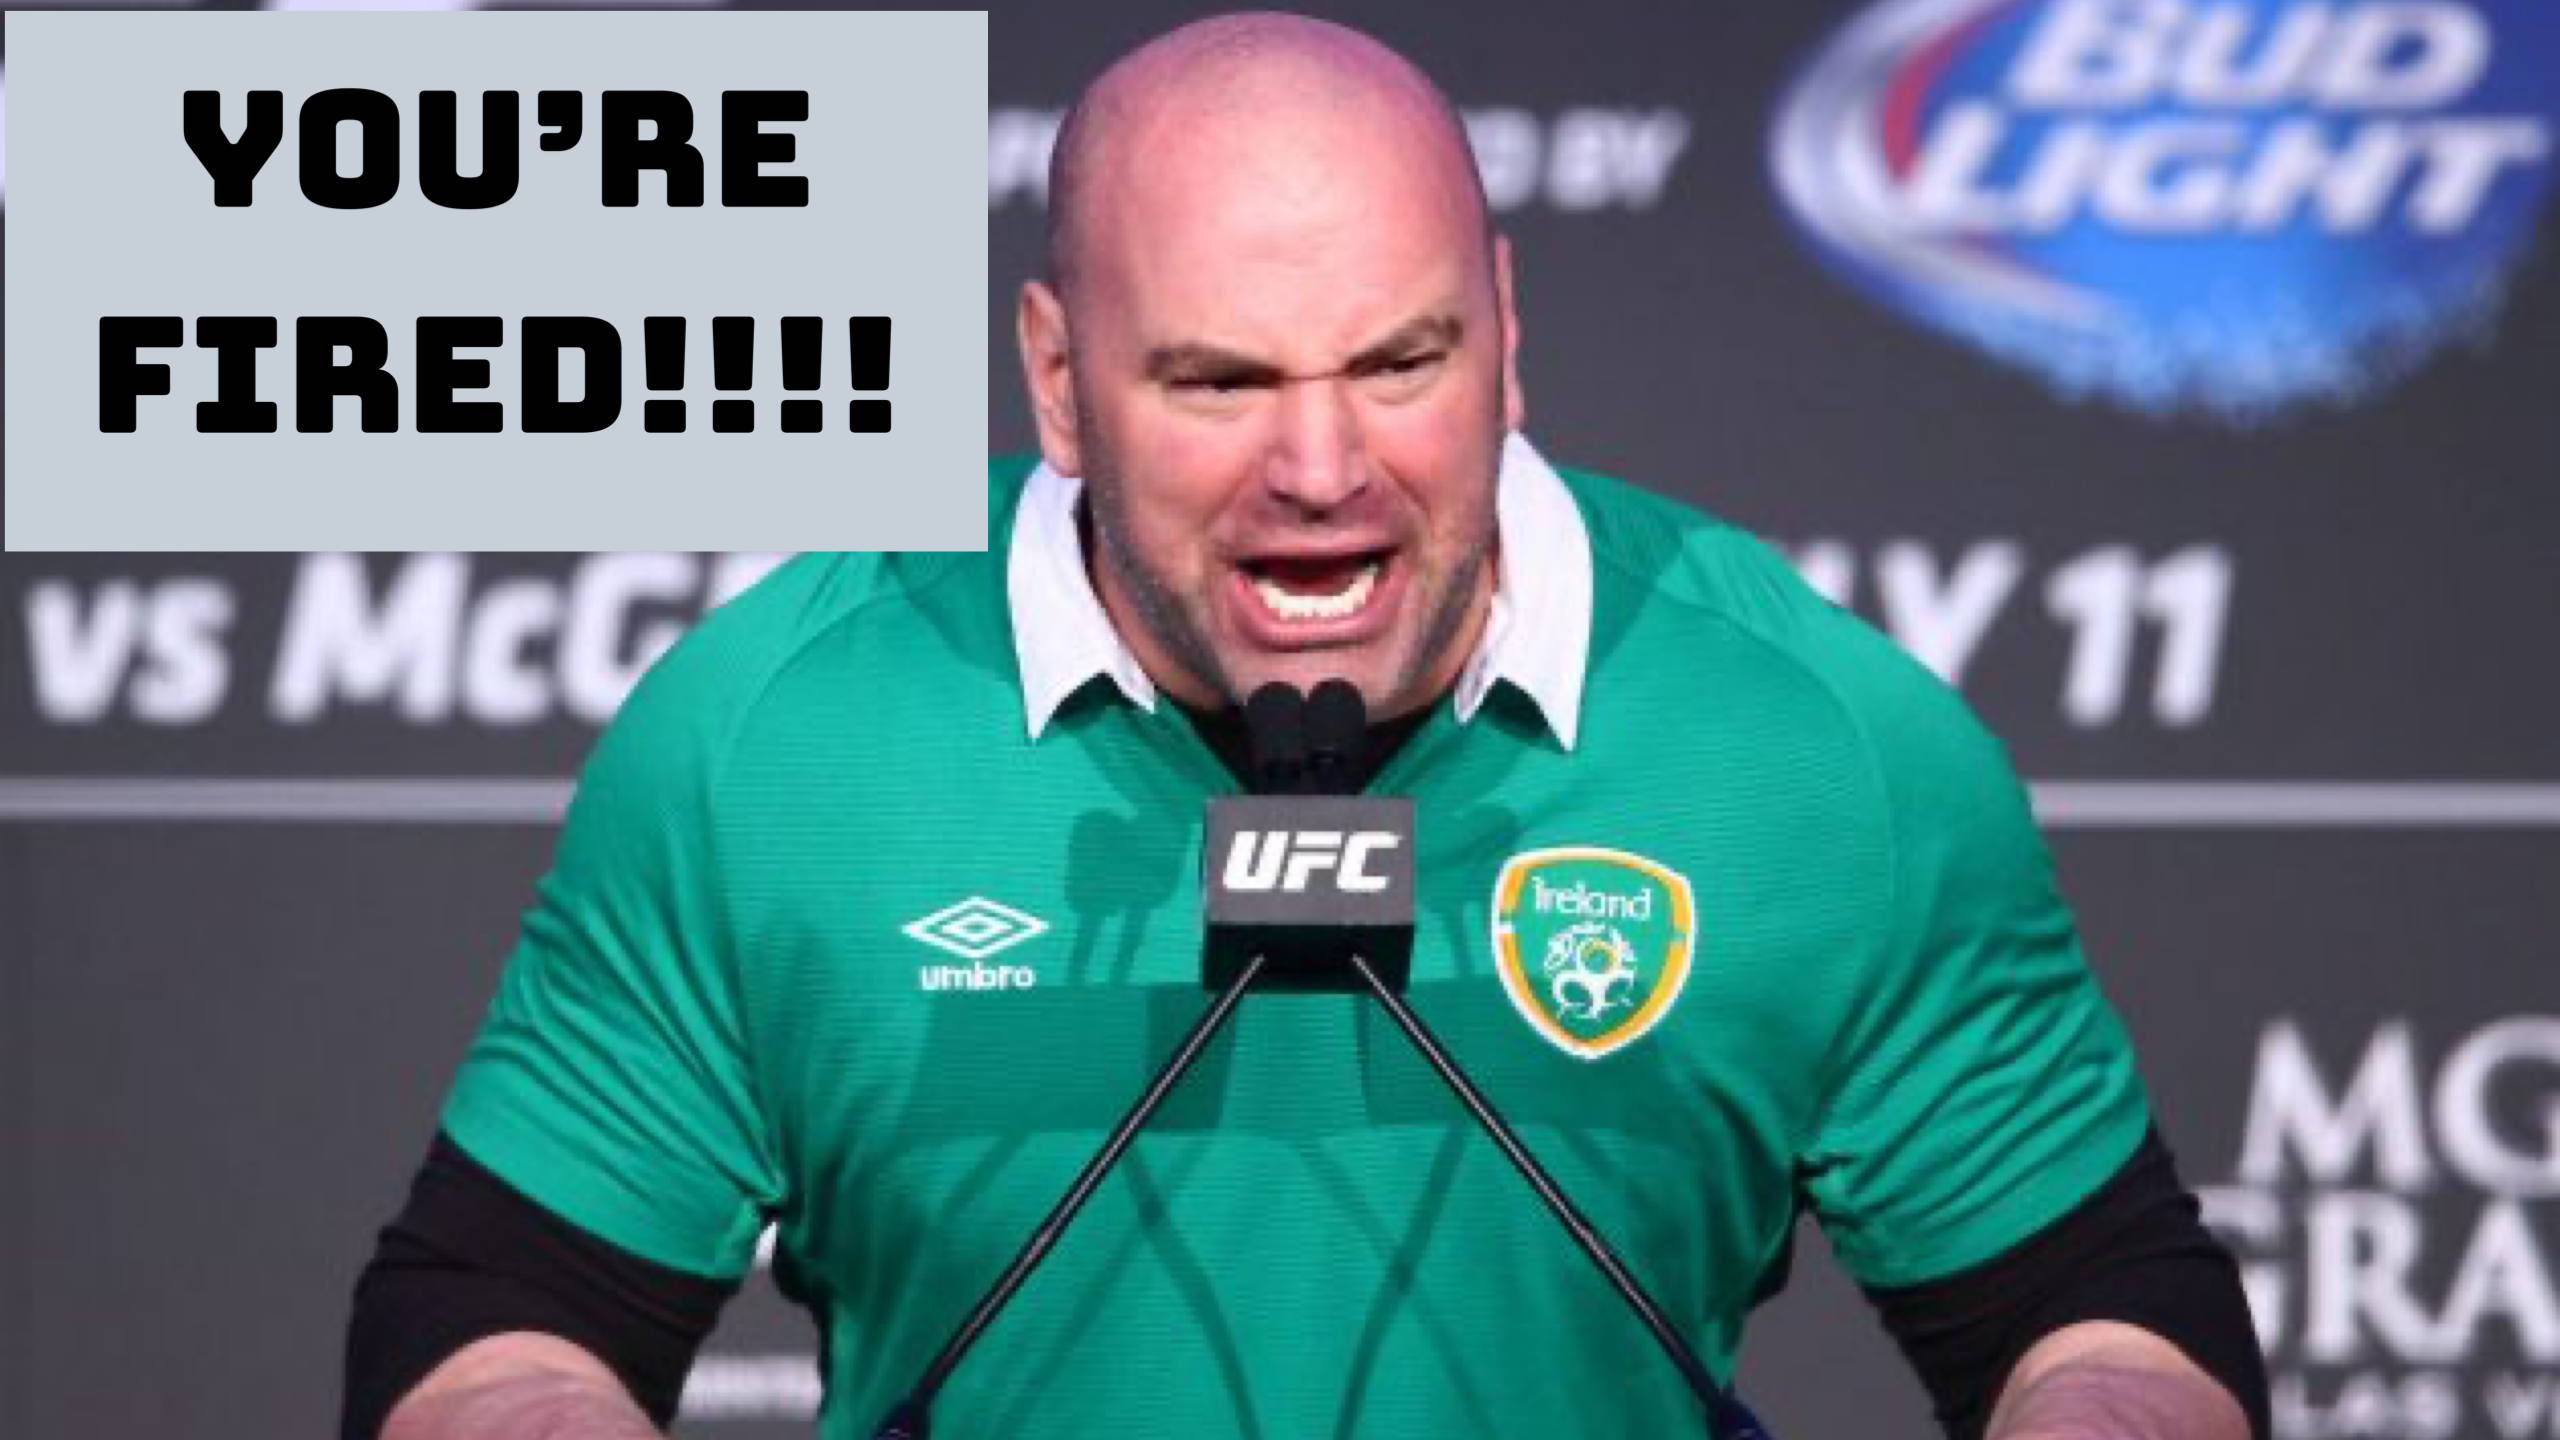 """UFC Fighter Calls Out Fighter Pay, told by UFC """"Not To Talk About It In Interview"""""""